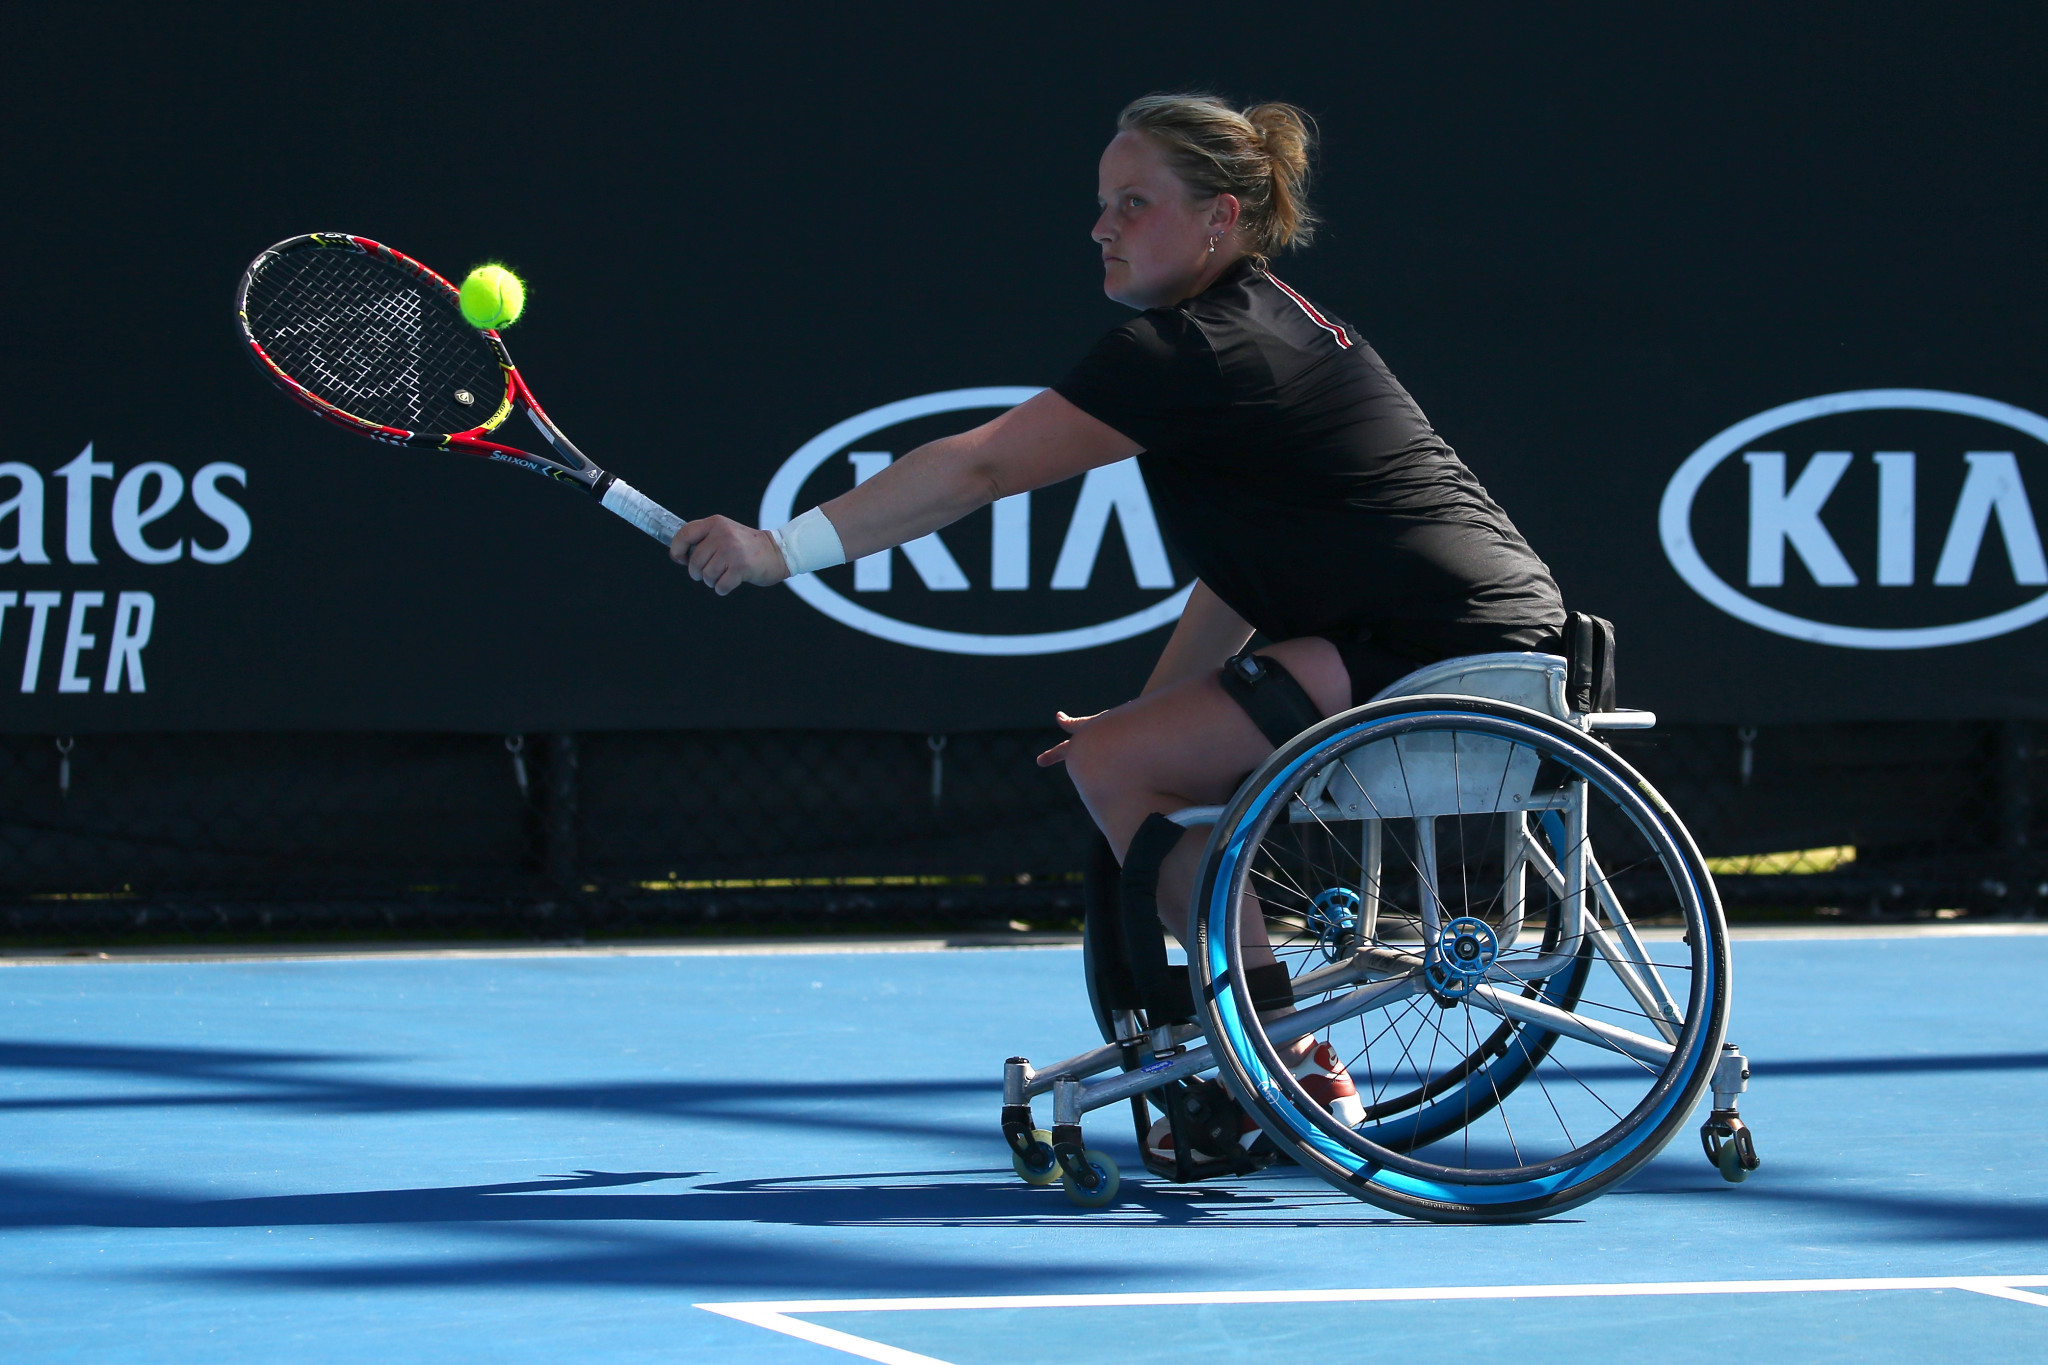 Dutch star van Koot ousts Kamiji to reach wheelchair tennis final at Wimbledon